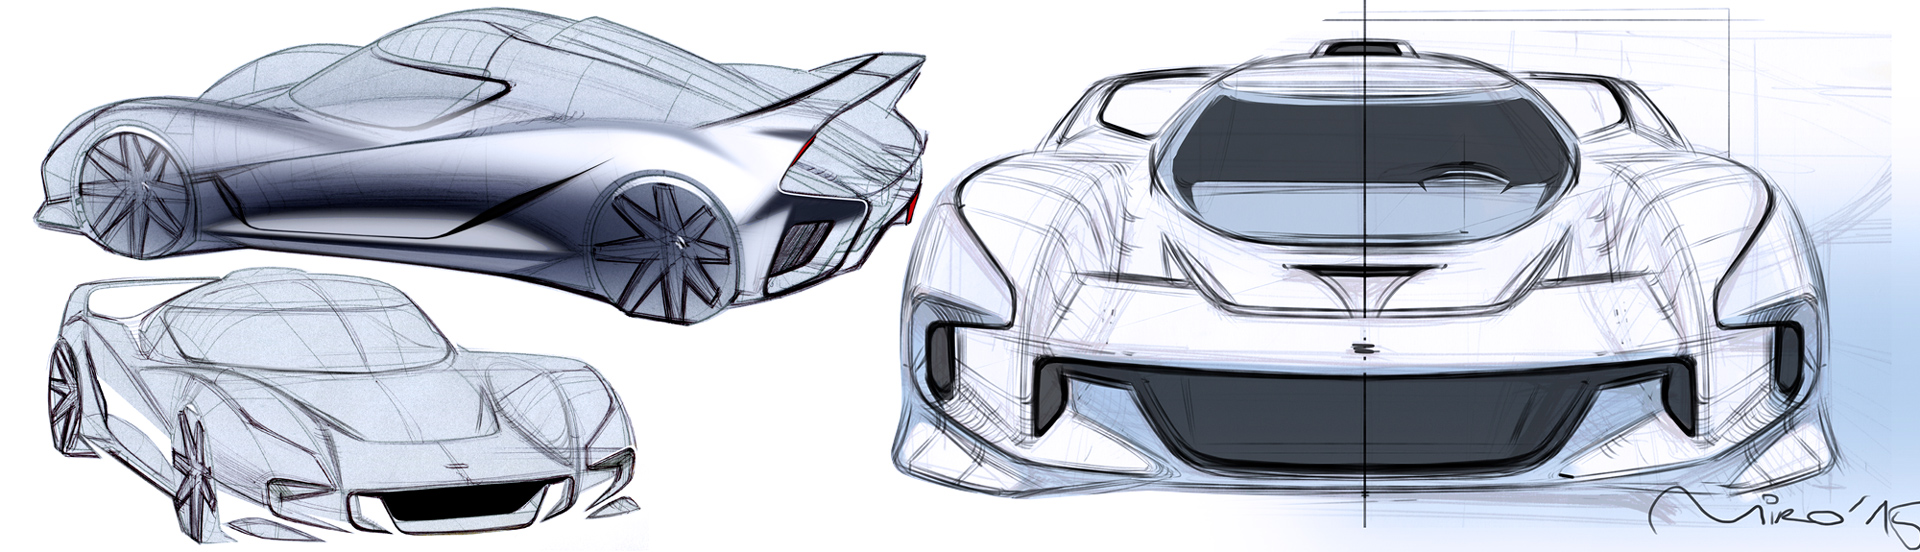 EIDO GTR Design Sketches by Miroslav Dimitrov